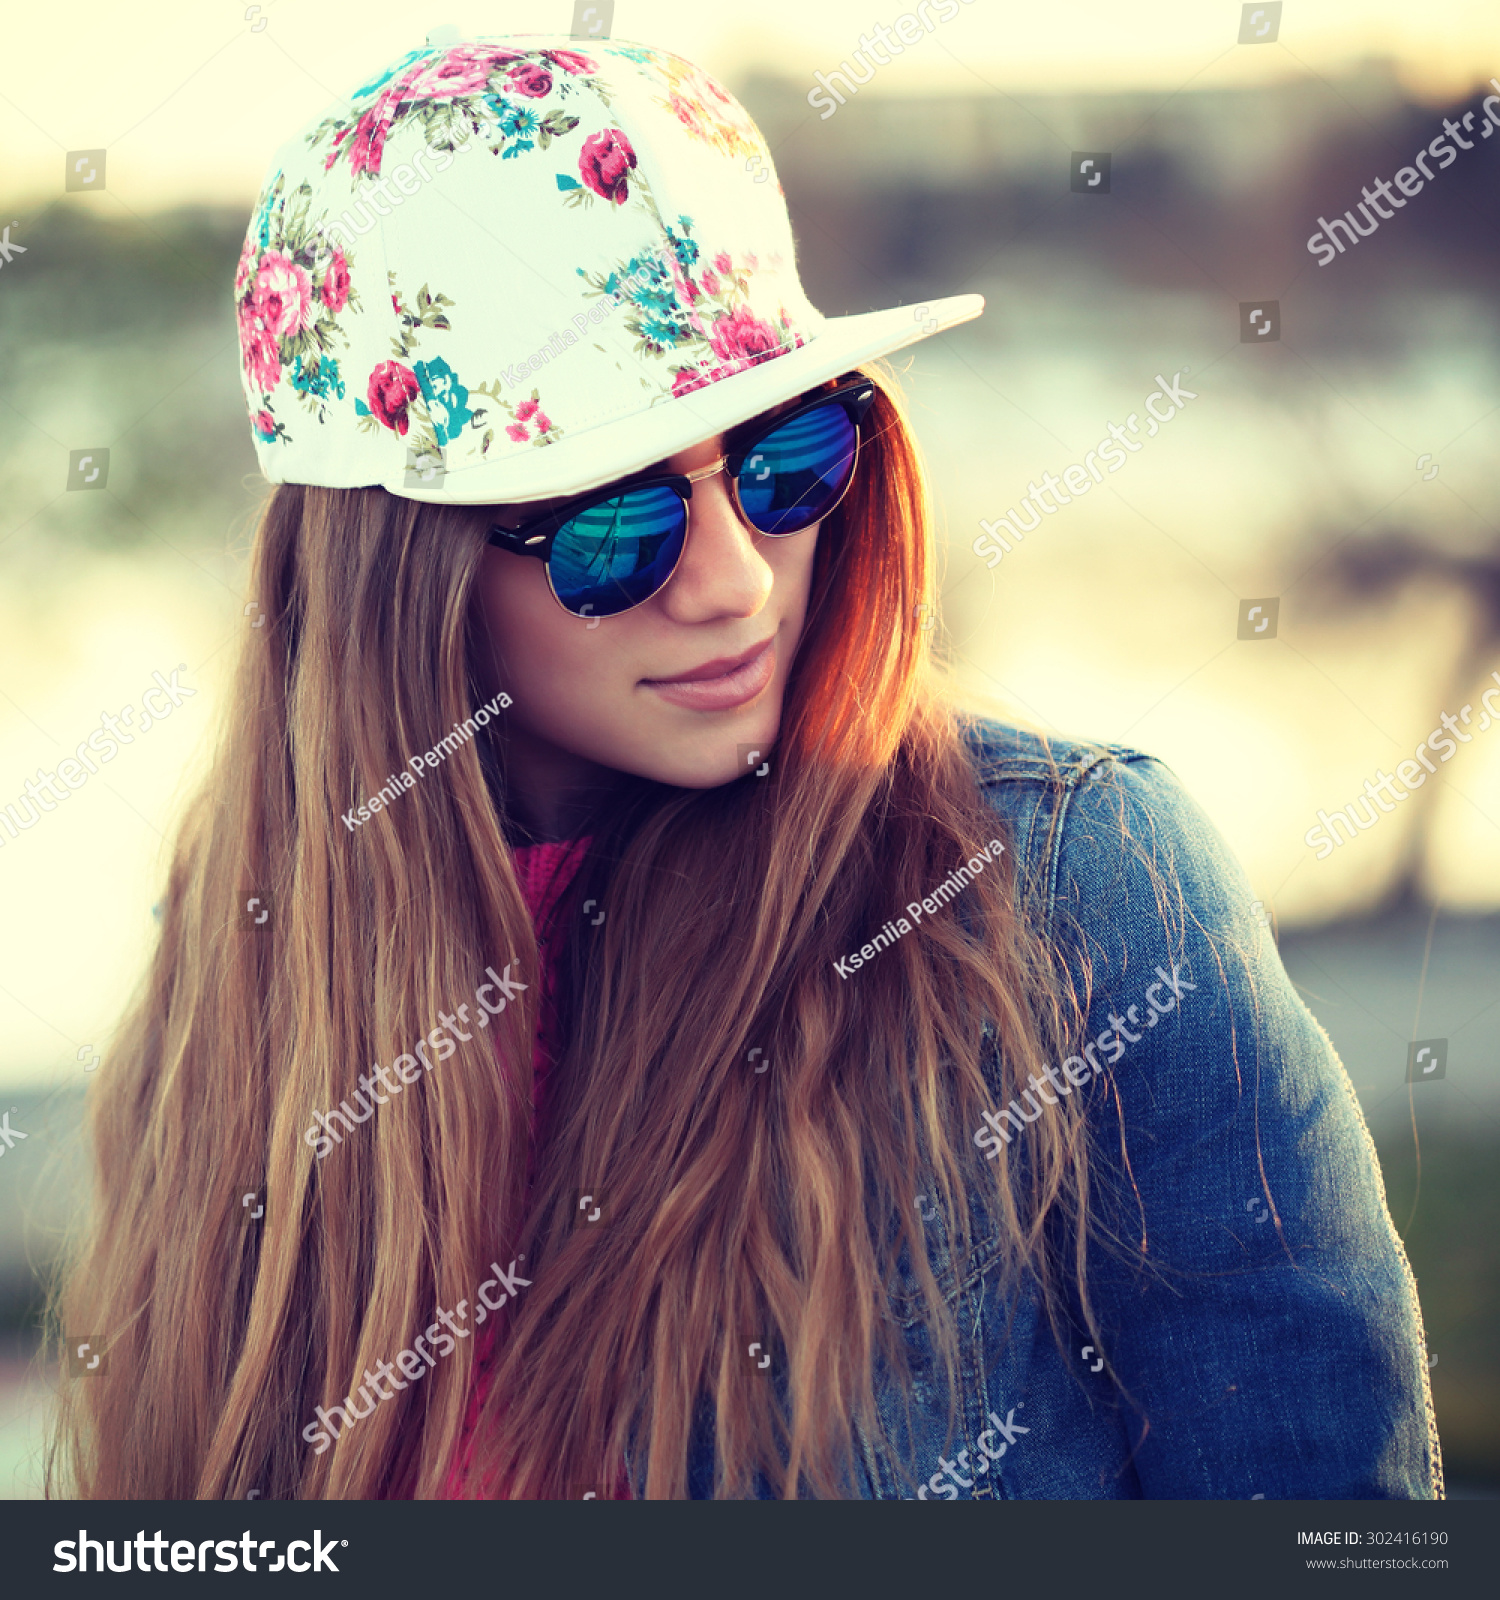 outdoor fashion portrait of stylish swag girl wearing